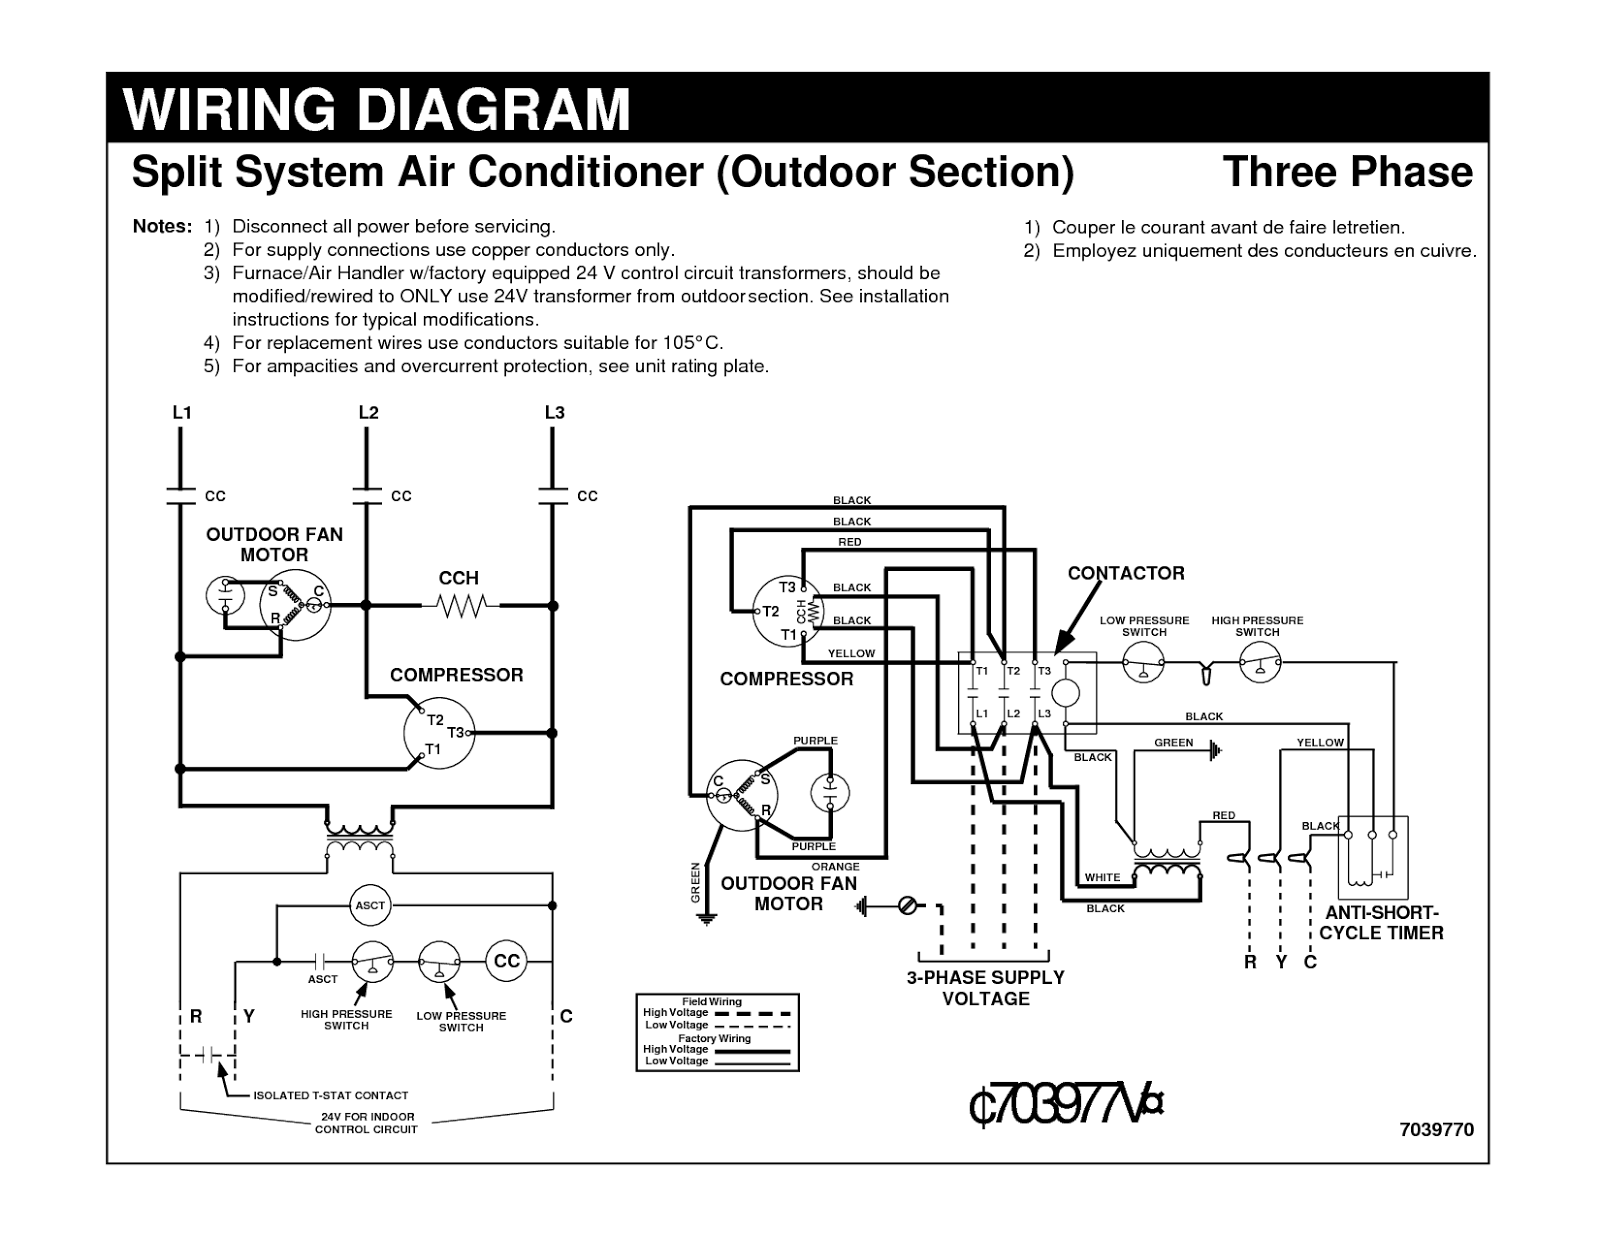 wiring+diagram+in+the+user+manual hvac wiring diagram payne hvac wiring diagrams \u2022 wiring diagrams wiring diagram for split system air conditioner at couponss.co